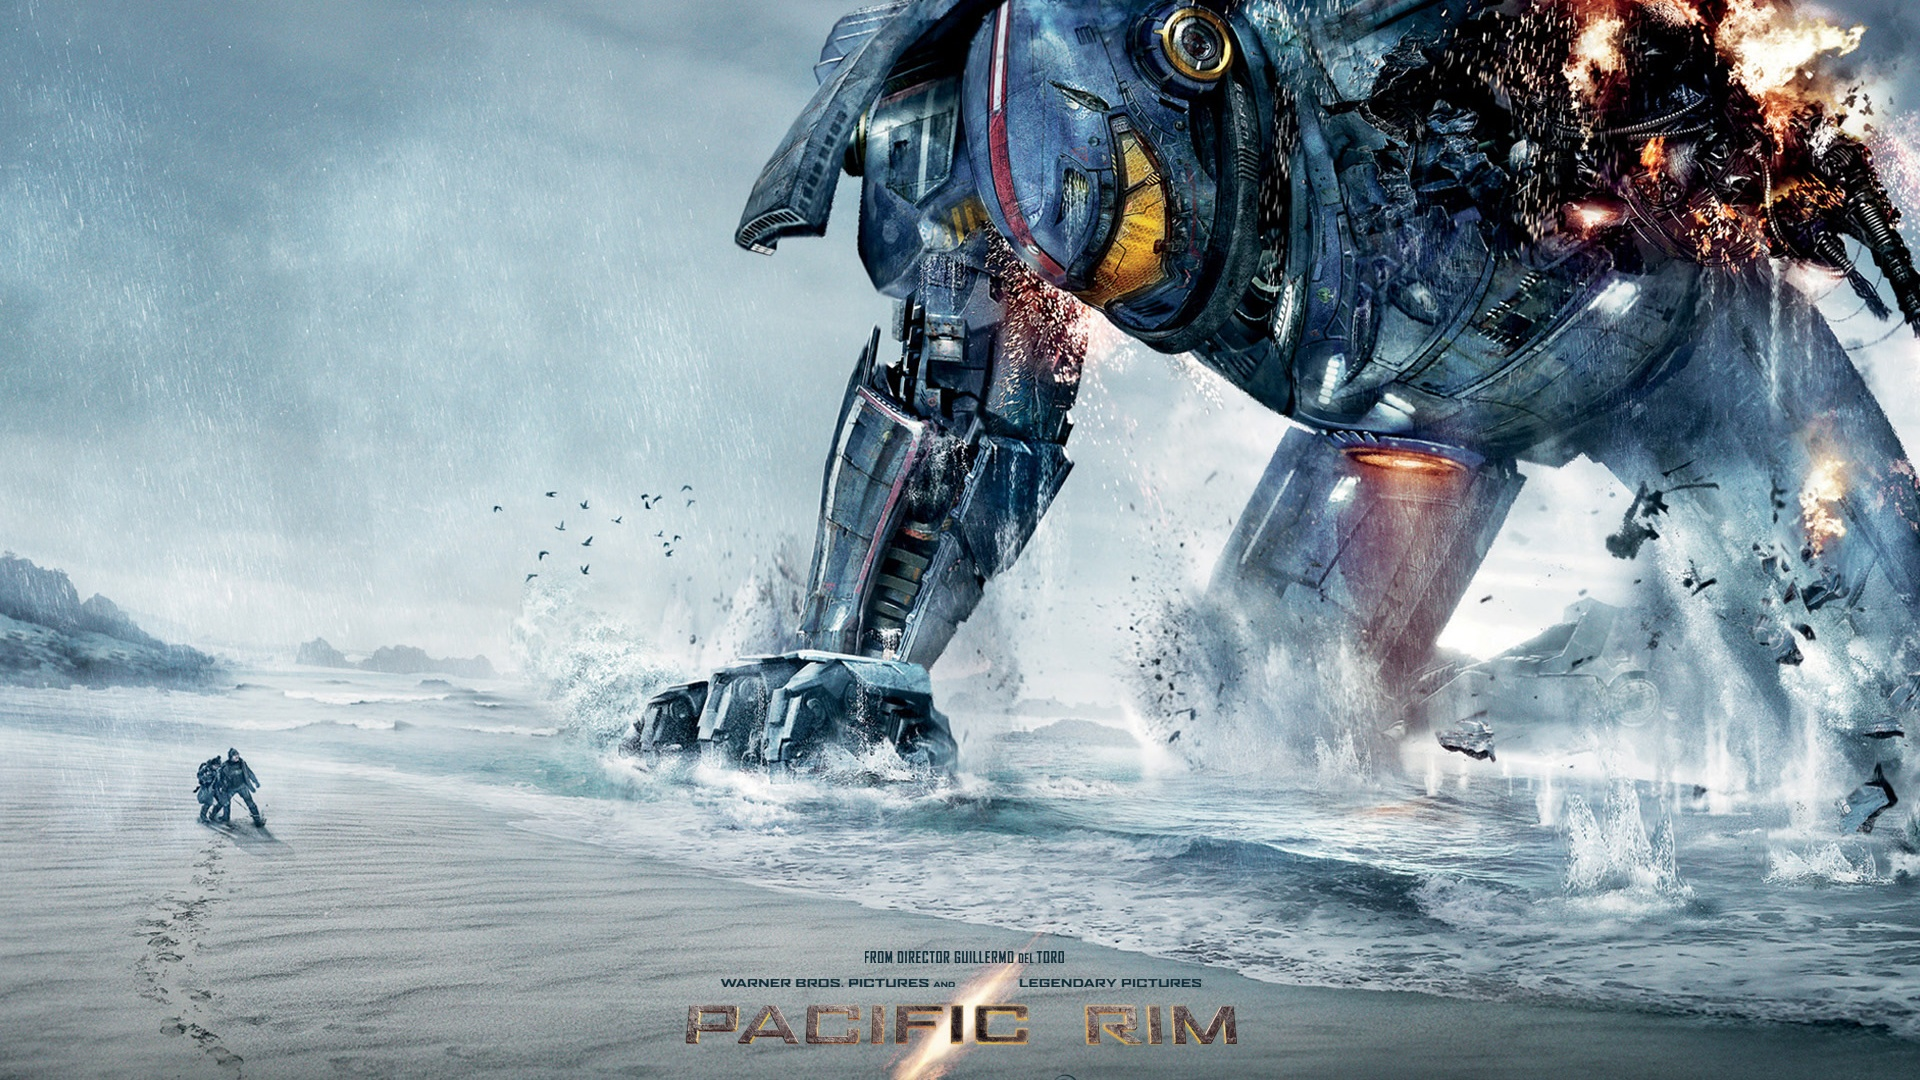 1920x1080 2013 pacific rim movie Wallpaper